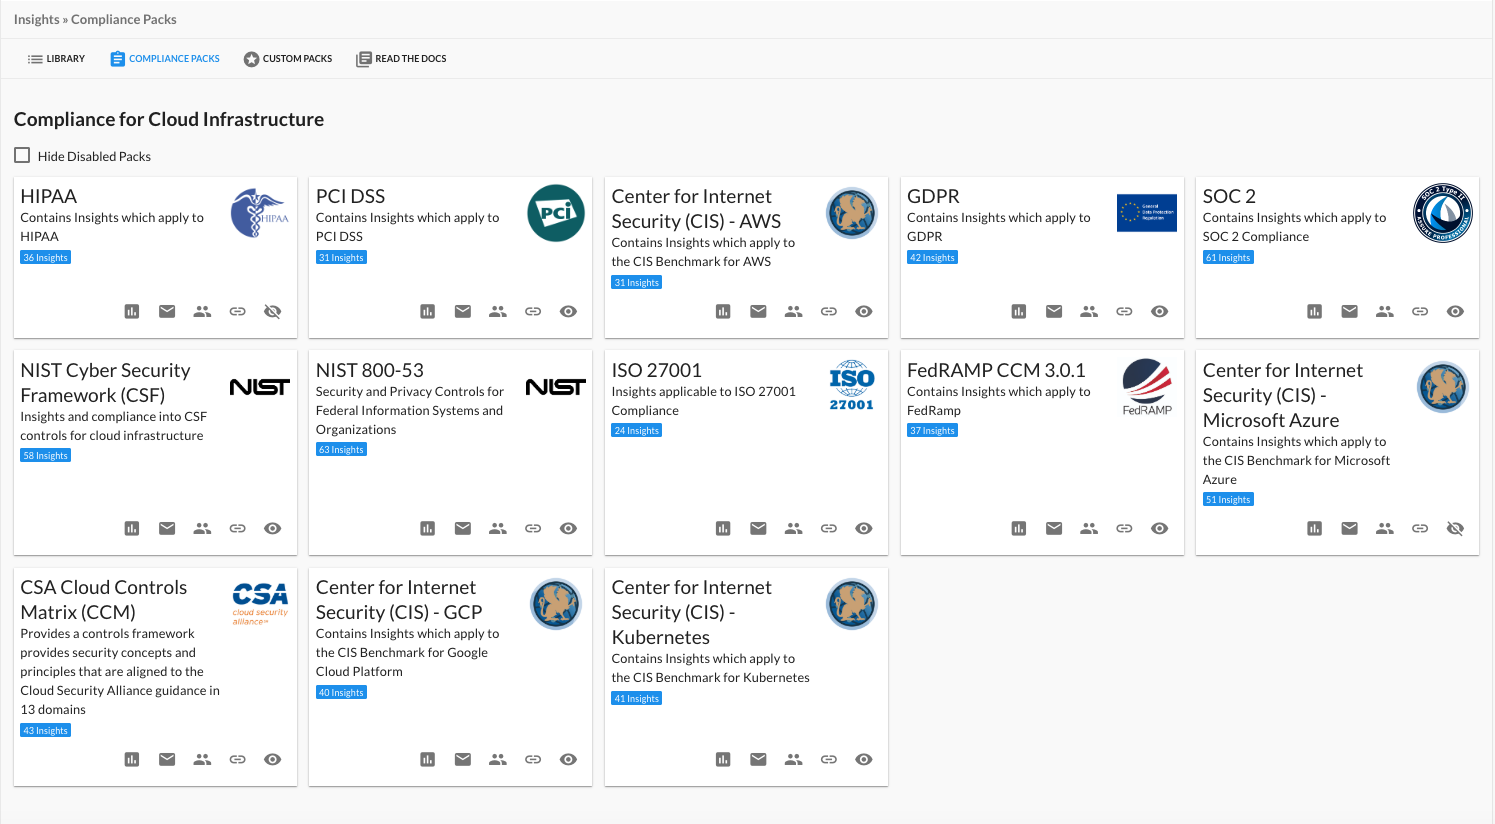 DivvyCloud-Provided Compliance Packs as Seen on the Insights Page